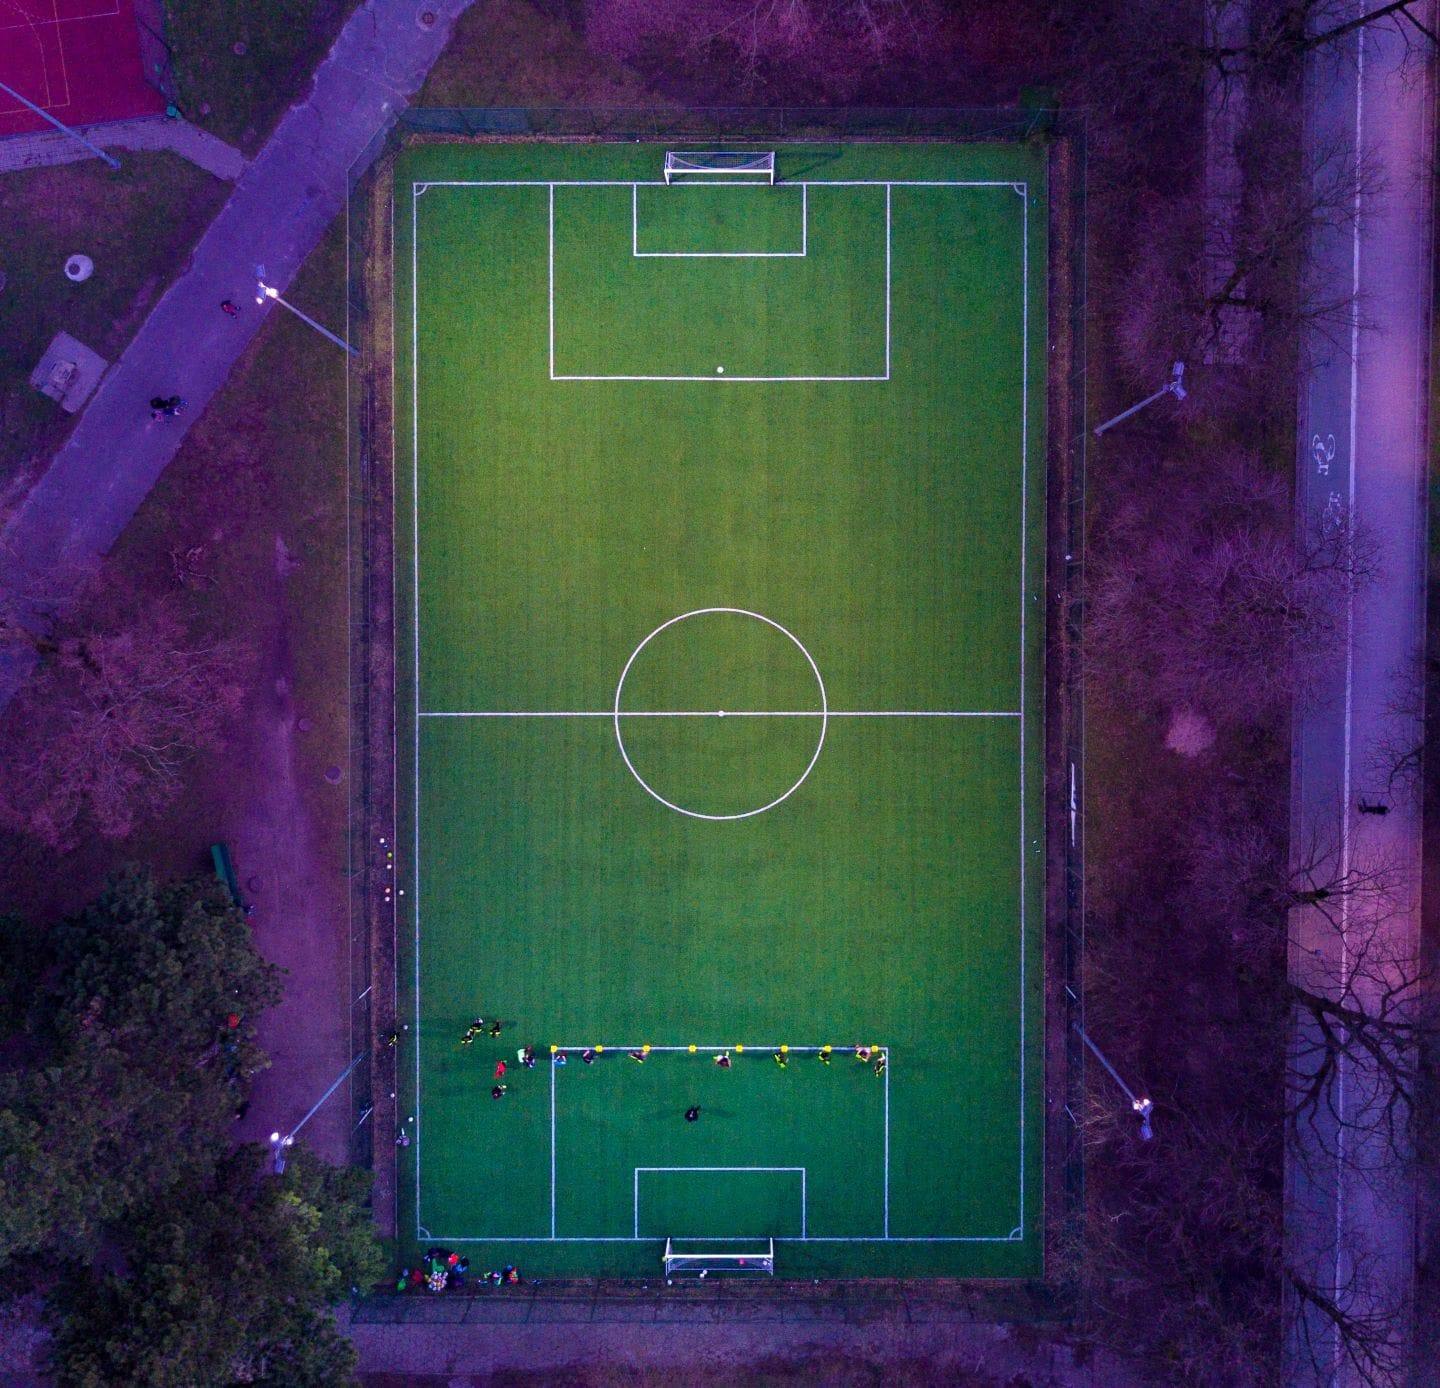 World Soccer Trivia Questions and Answers - Stadium from above